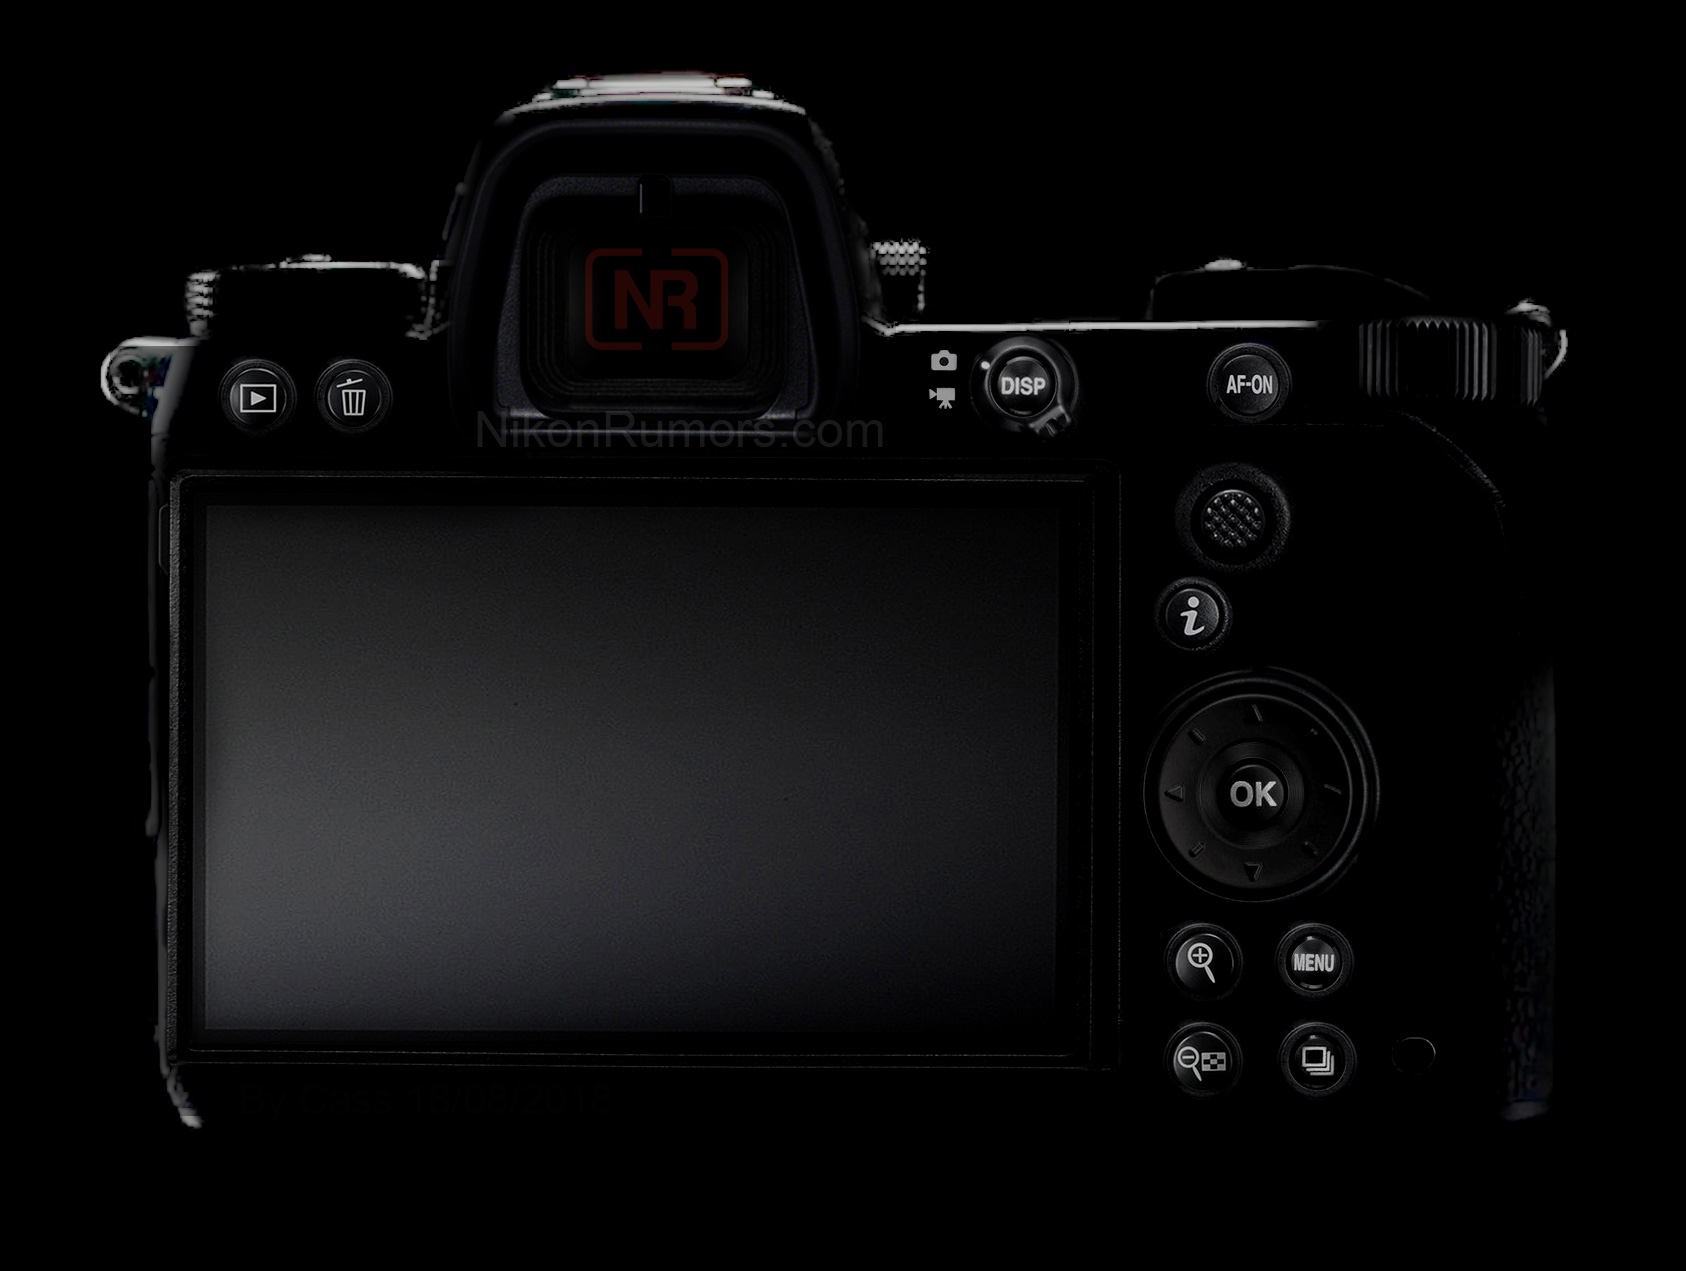 Nikon-Z6-Z7-mirrorless-camera-back.jpg